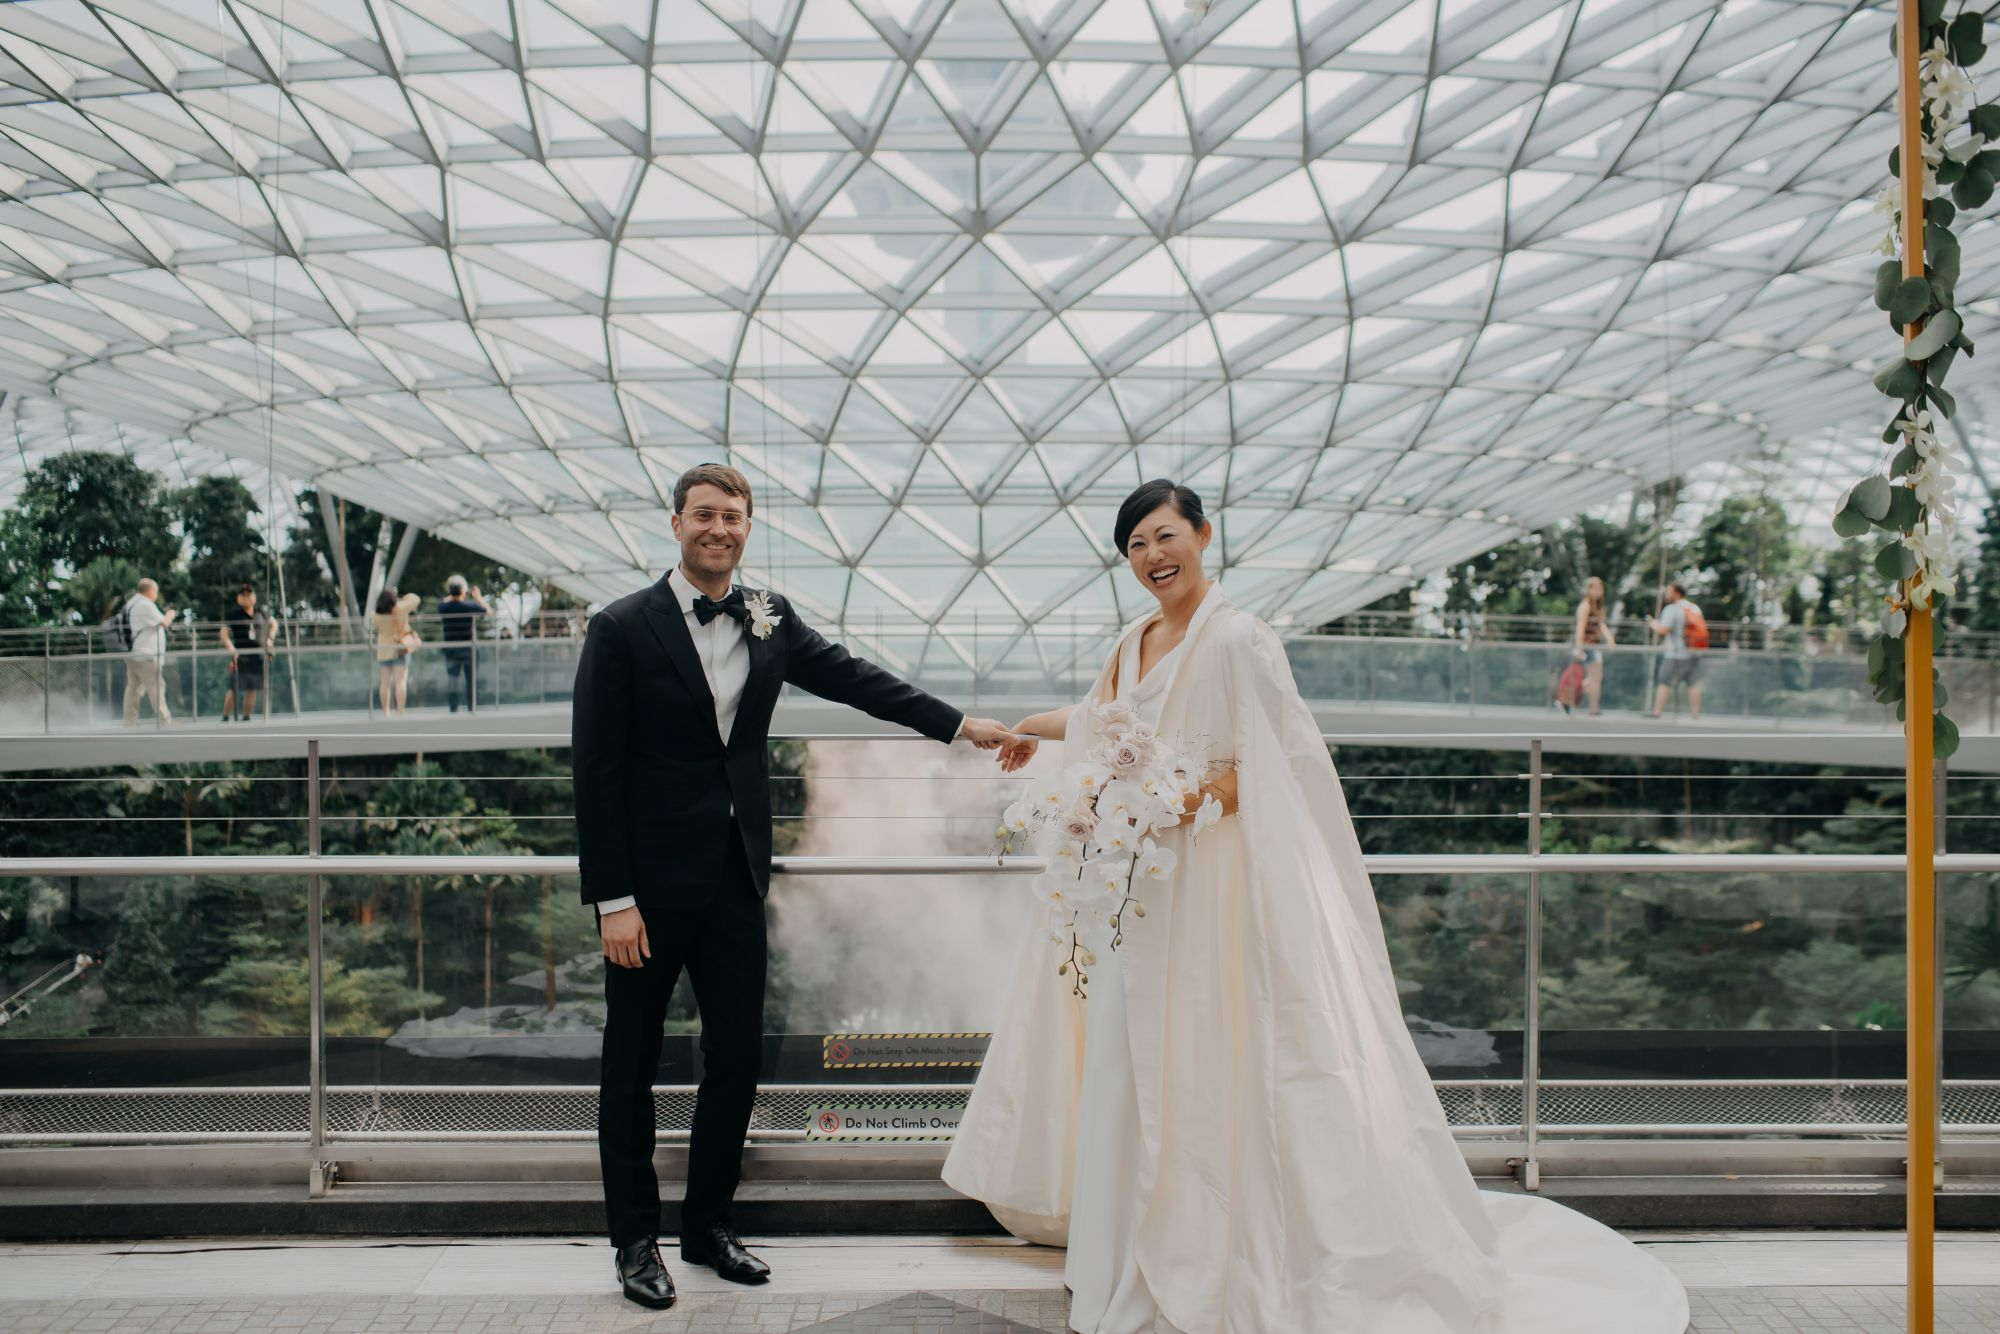 A Wedding that Took Place at Two Iconic Buildings In Singapore: Jewel Changi Airport and Marina Bay Sands